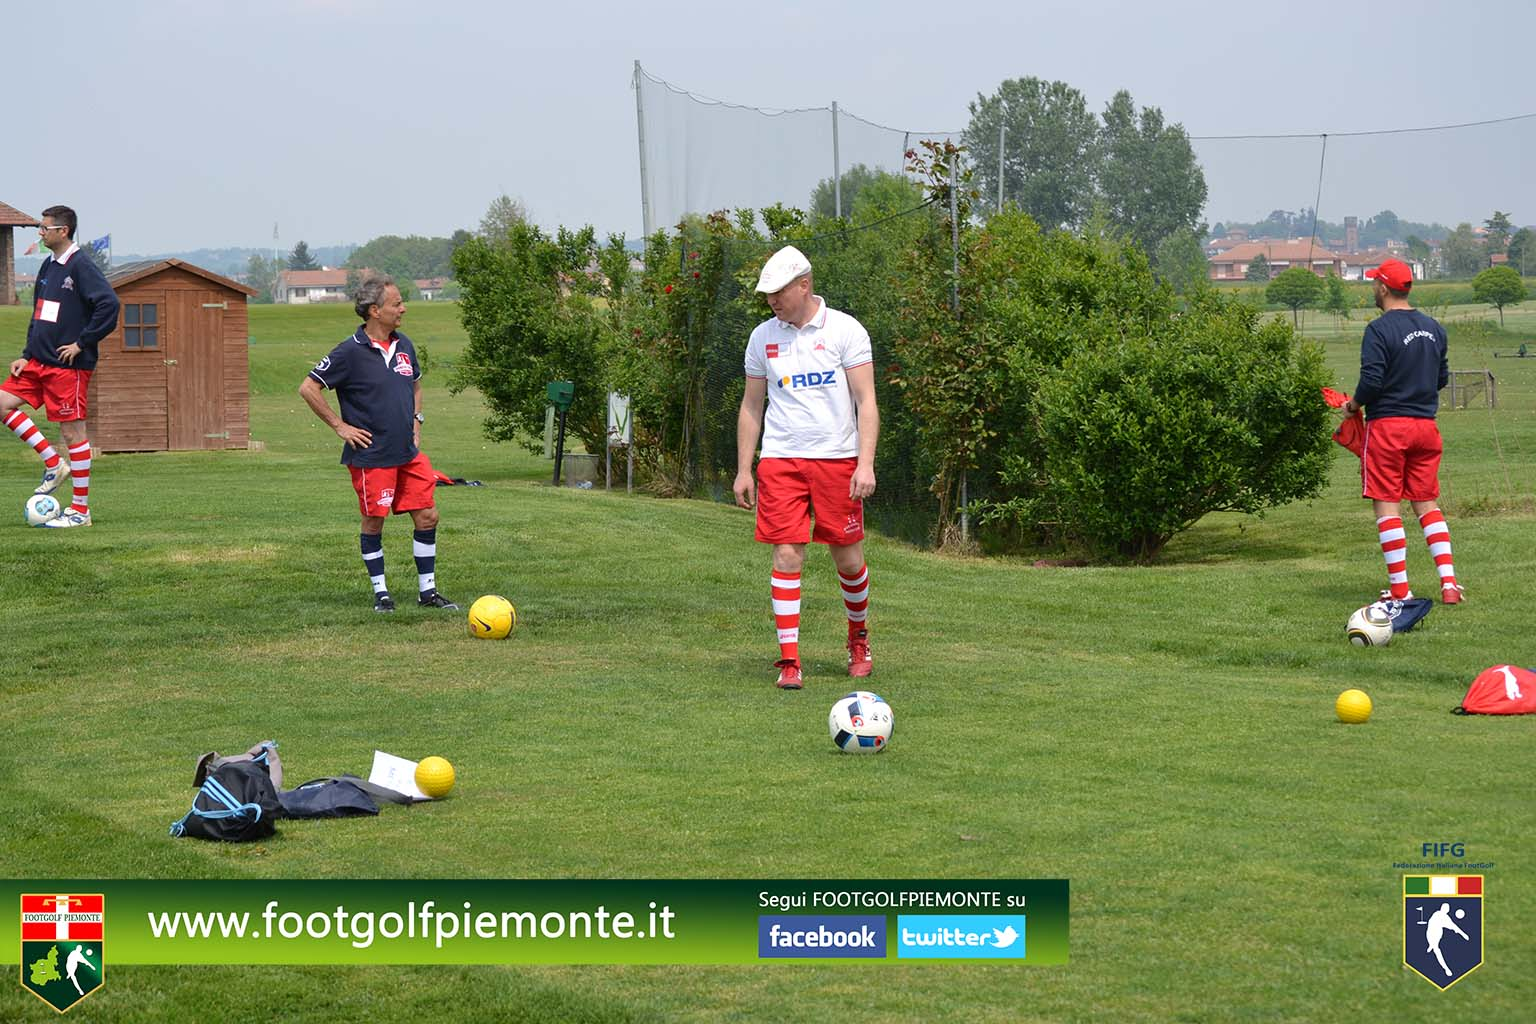 FOTO 9 Regions' Cup Footgolf Piemonte 2016 Golf Città di Asti (At) 30apr16-15